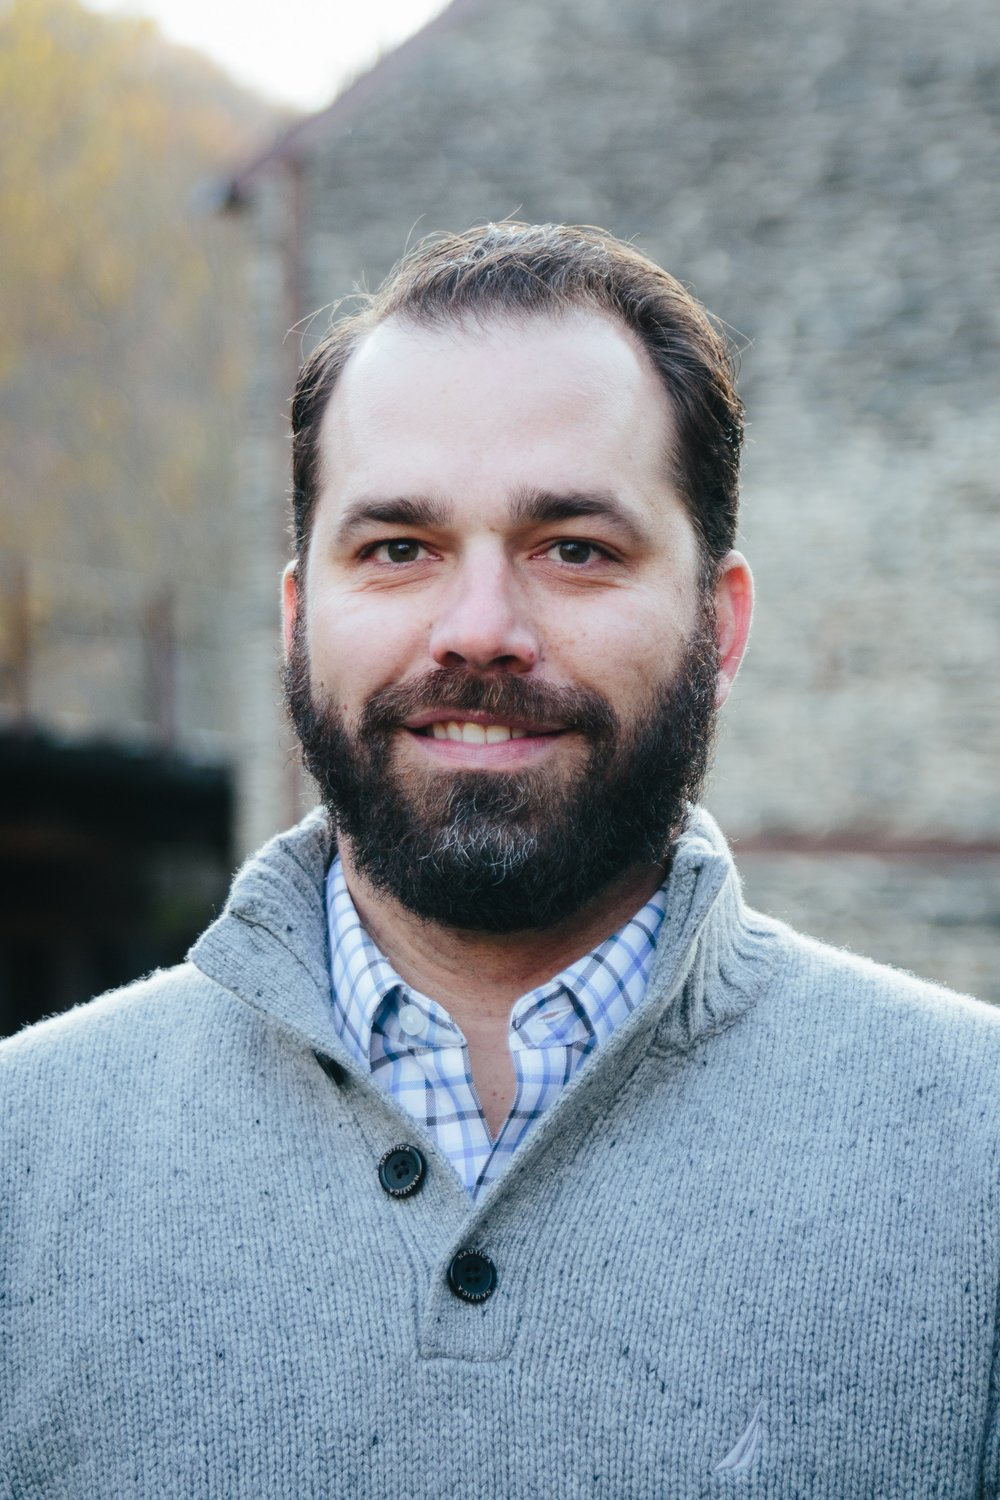 ADAM WRIGHT - Advisory Board Vice PresidentDirector of Business DevelopmentPrinting For LessAdam Wright is the Director of Business Development at PFL, in Livingston, Montana. He has been a member of the AMA Advisory Board since March 2018. Bridging the gap between sales and marketing has been Adam's forte and interest for over a decade. He has worked in both roles, owned his own business and worked at every stage of the sales process to create happy customers. He enjoys sharing his sales knowledge and skills, when he's not snowboarding or fishing.